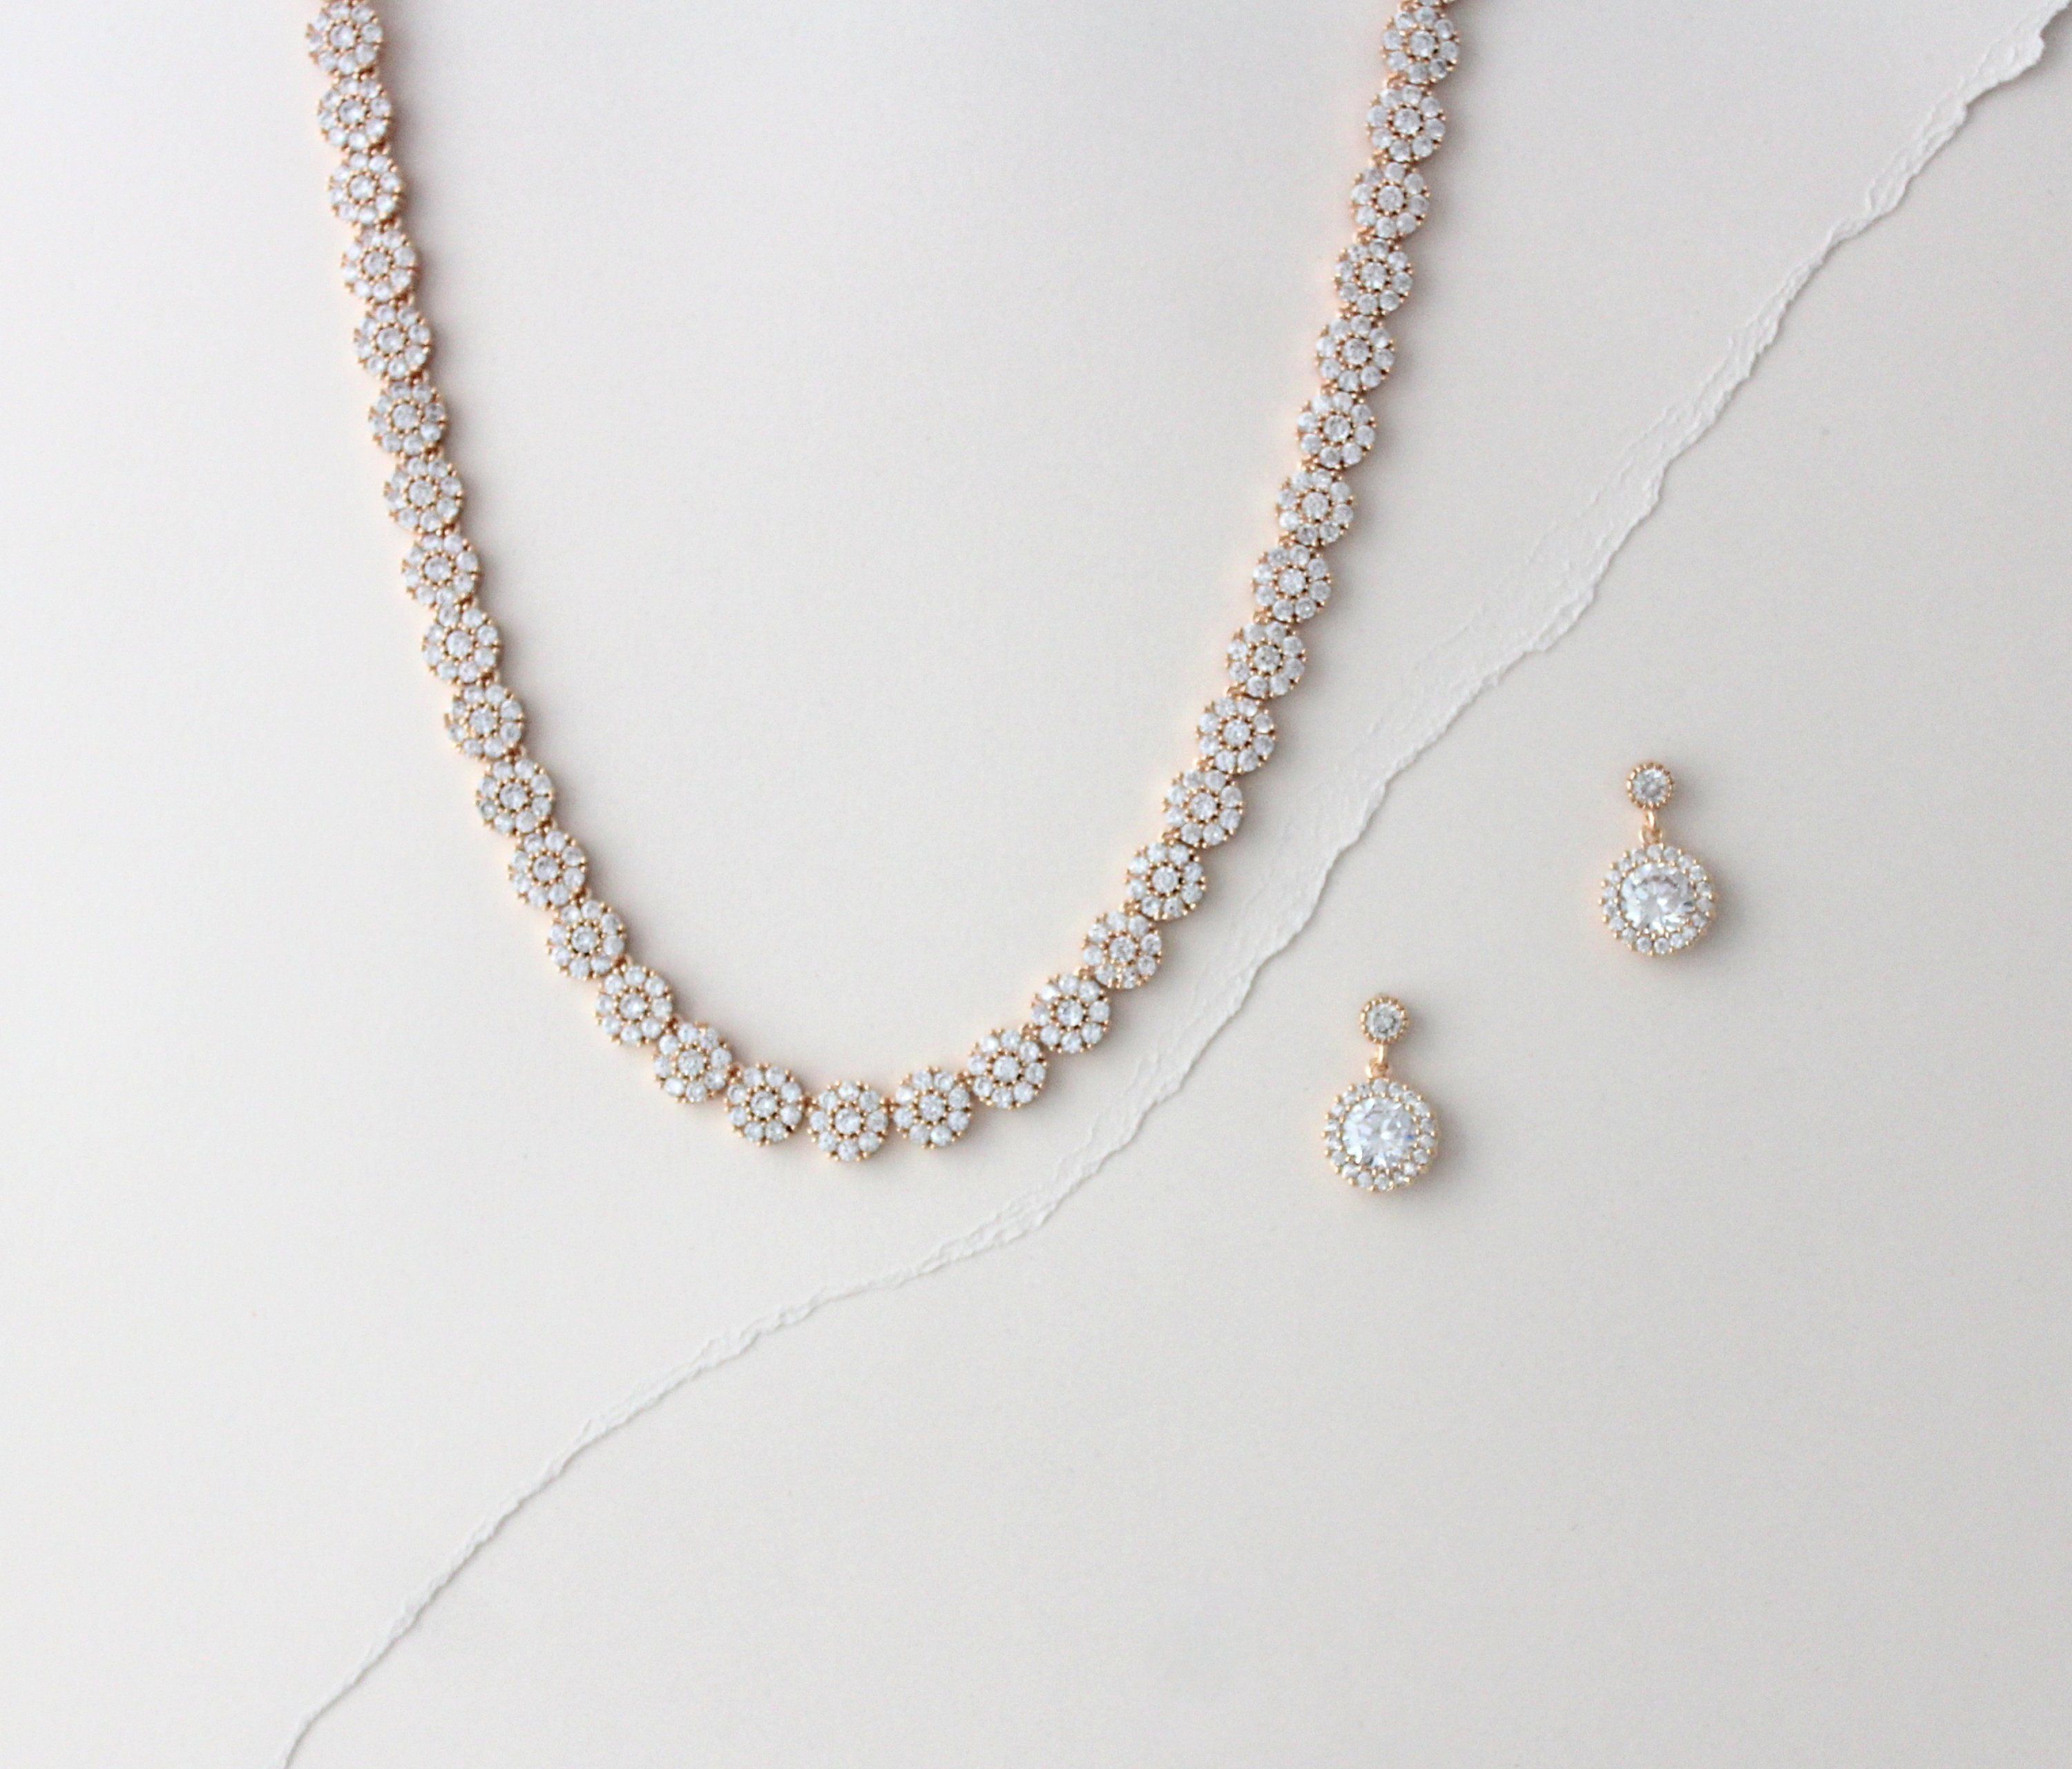 Dainty Rose Gold Bridal Necklace Rose Gold Bridal Jewelry Etsy In 2021 Gold Bridal Necklace Rose Gold Drop Earrings Wedding Necklace Set